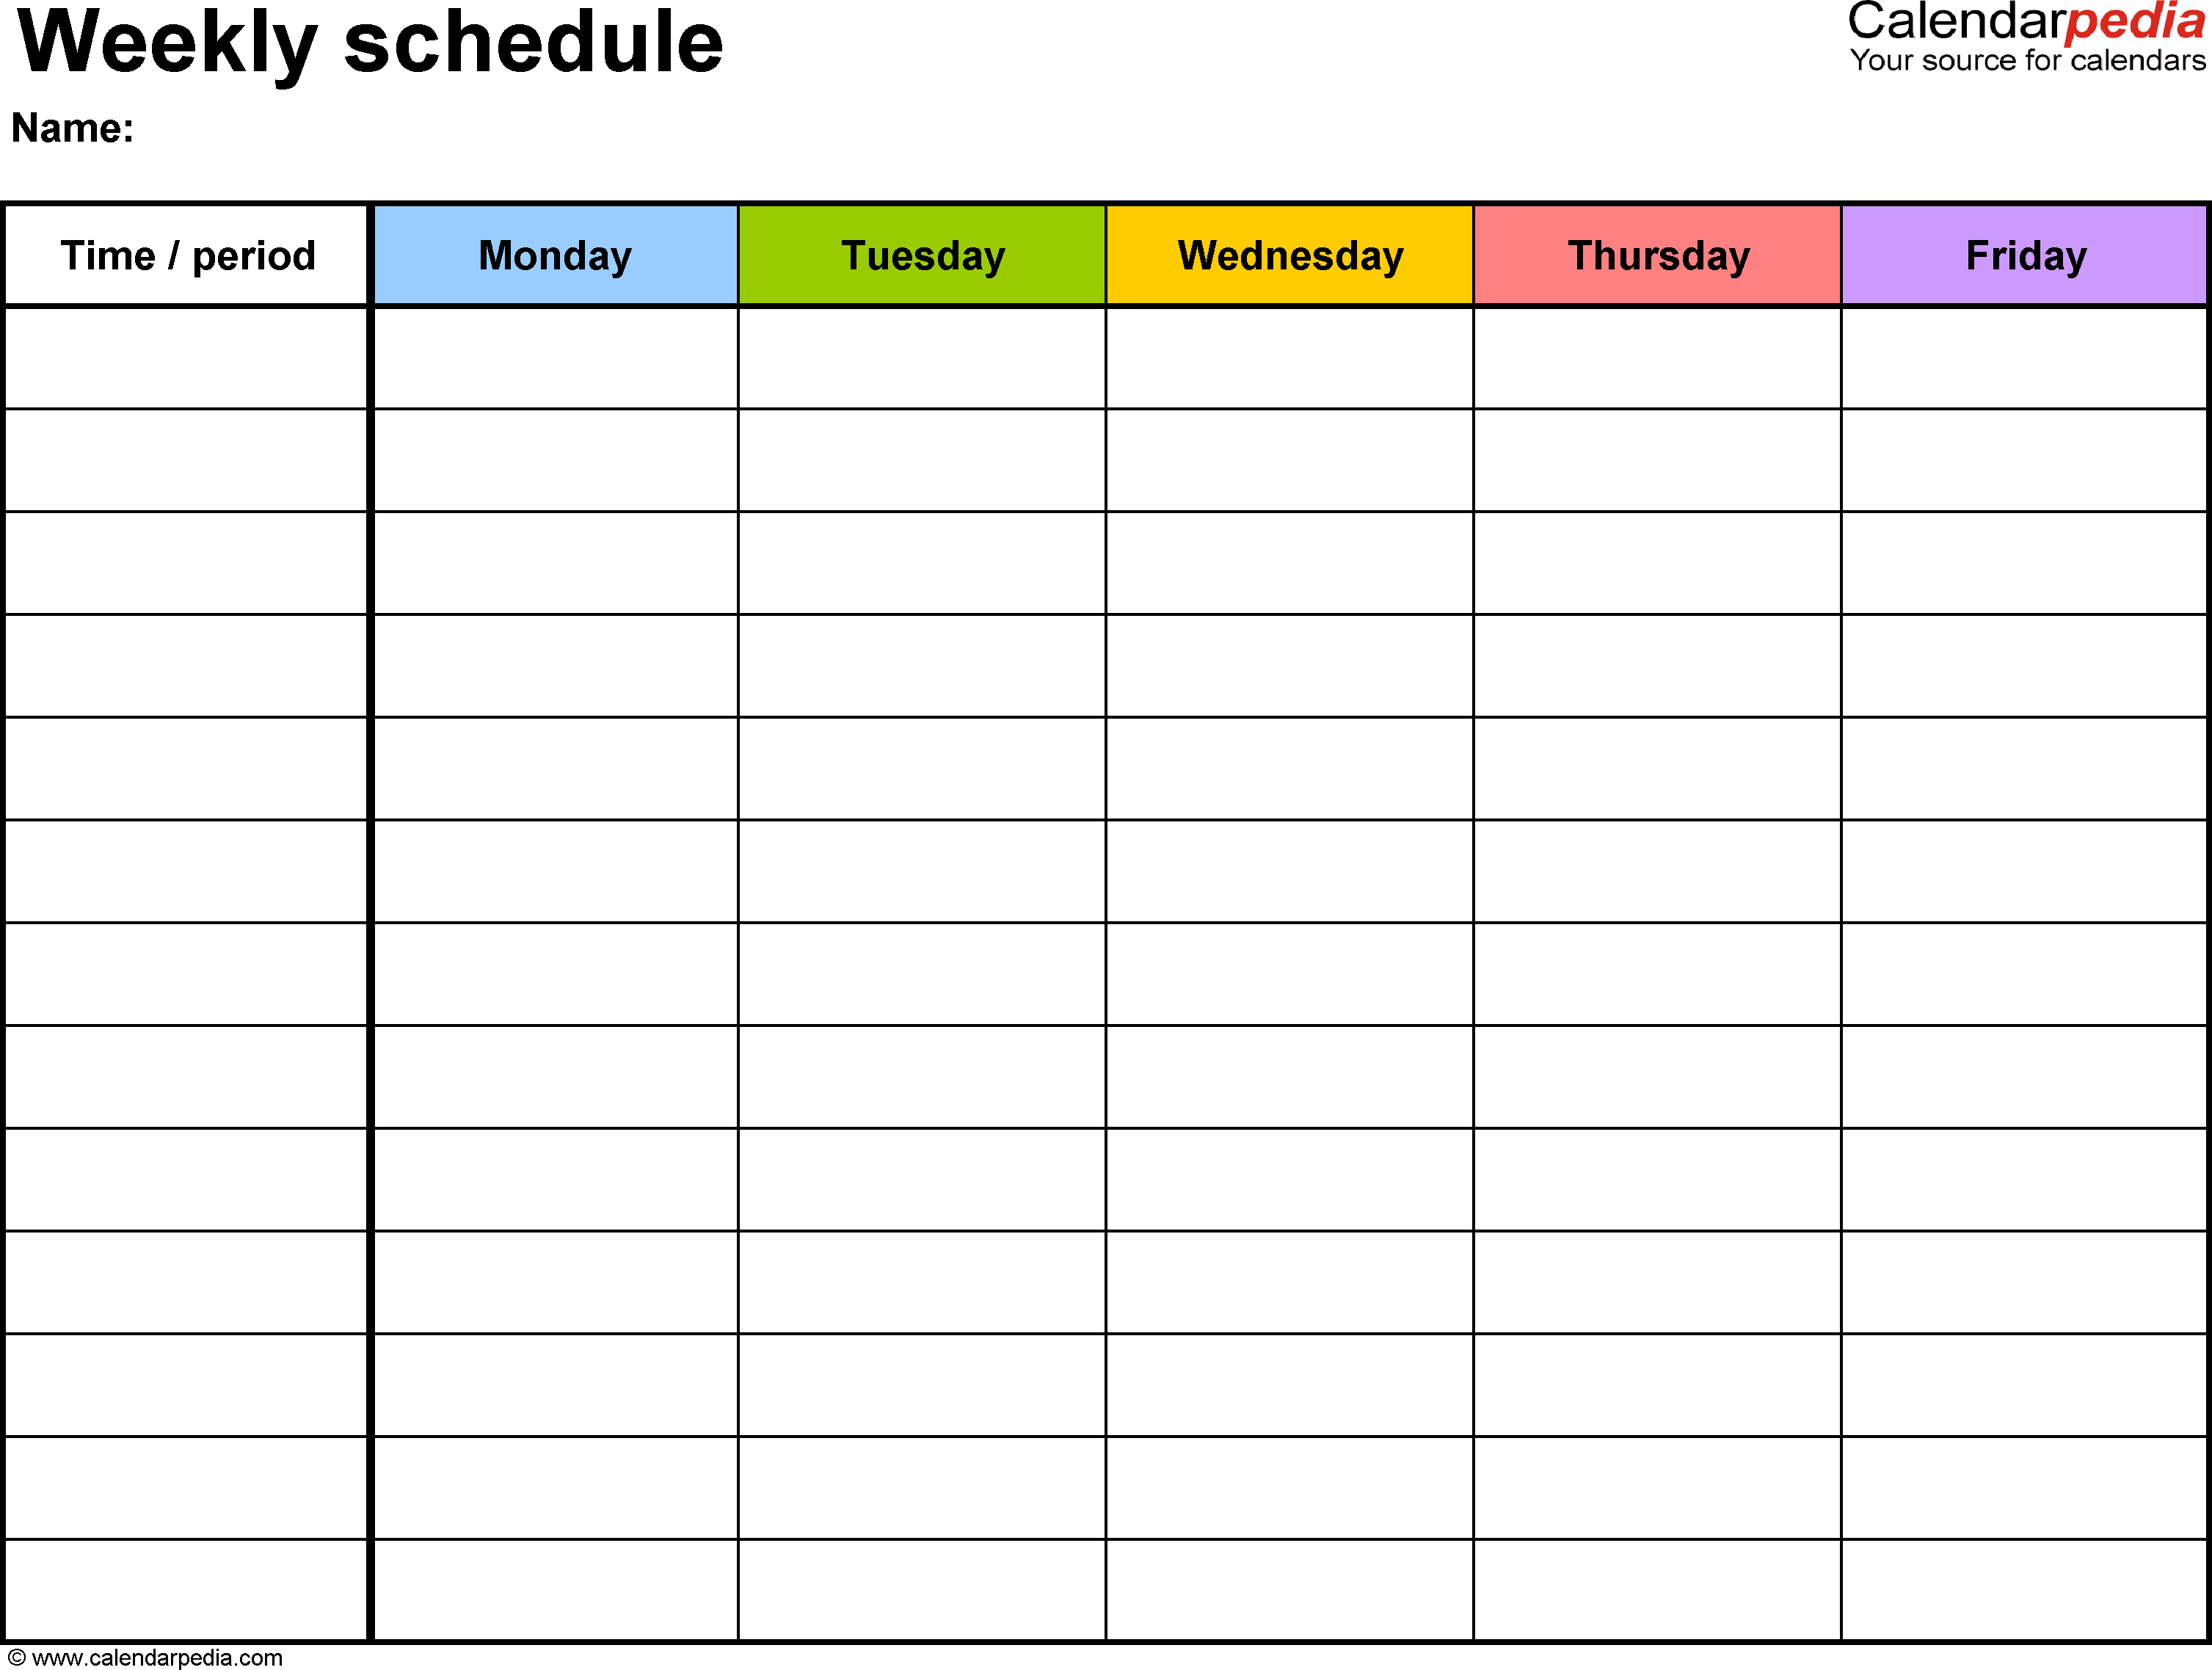 Free Weekly Schedule Templates For Pdf - 18 Templates inside Printable Blank Weekly Calendar With Times